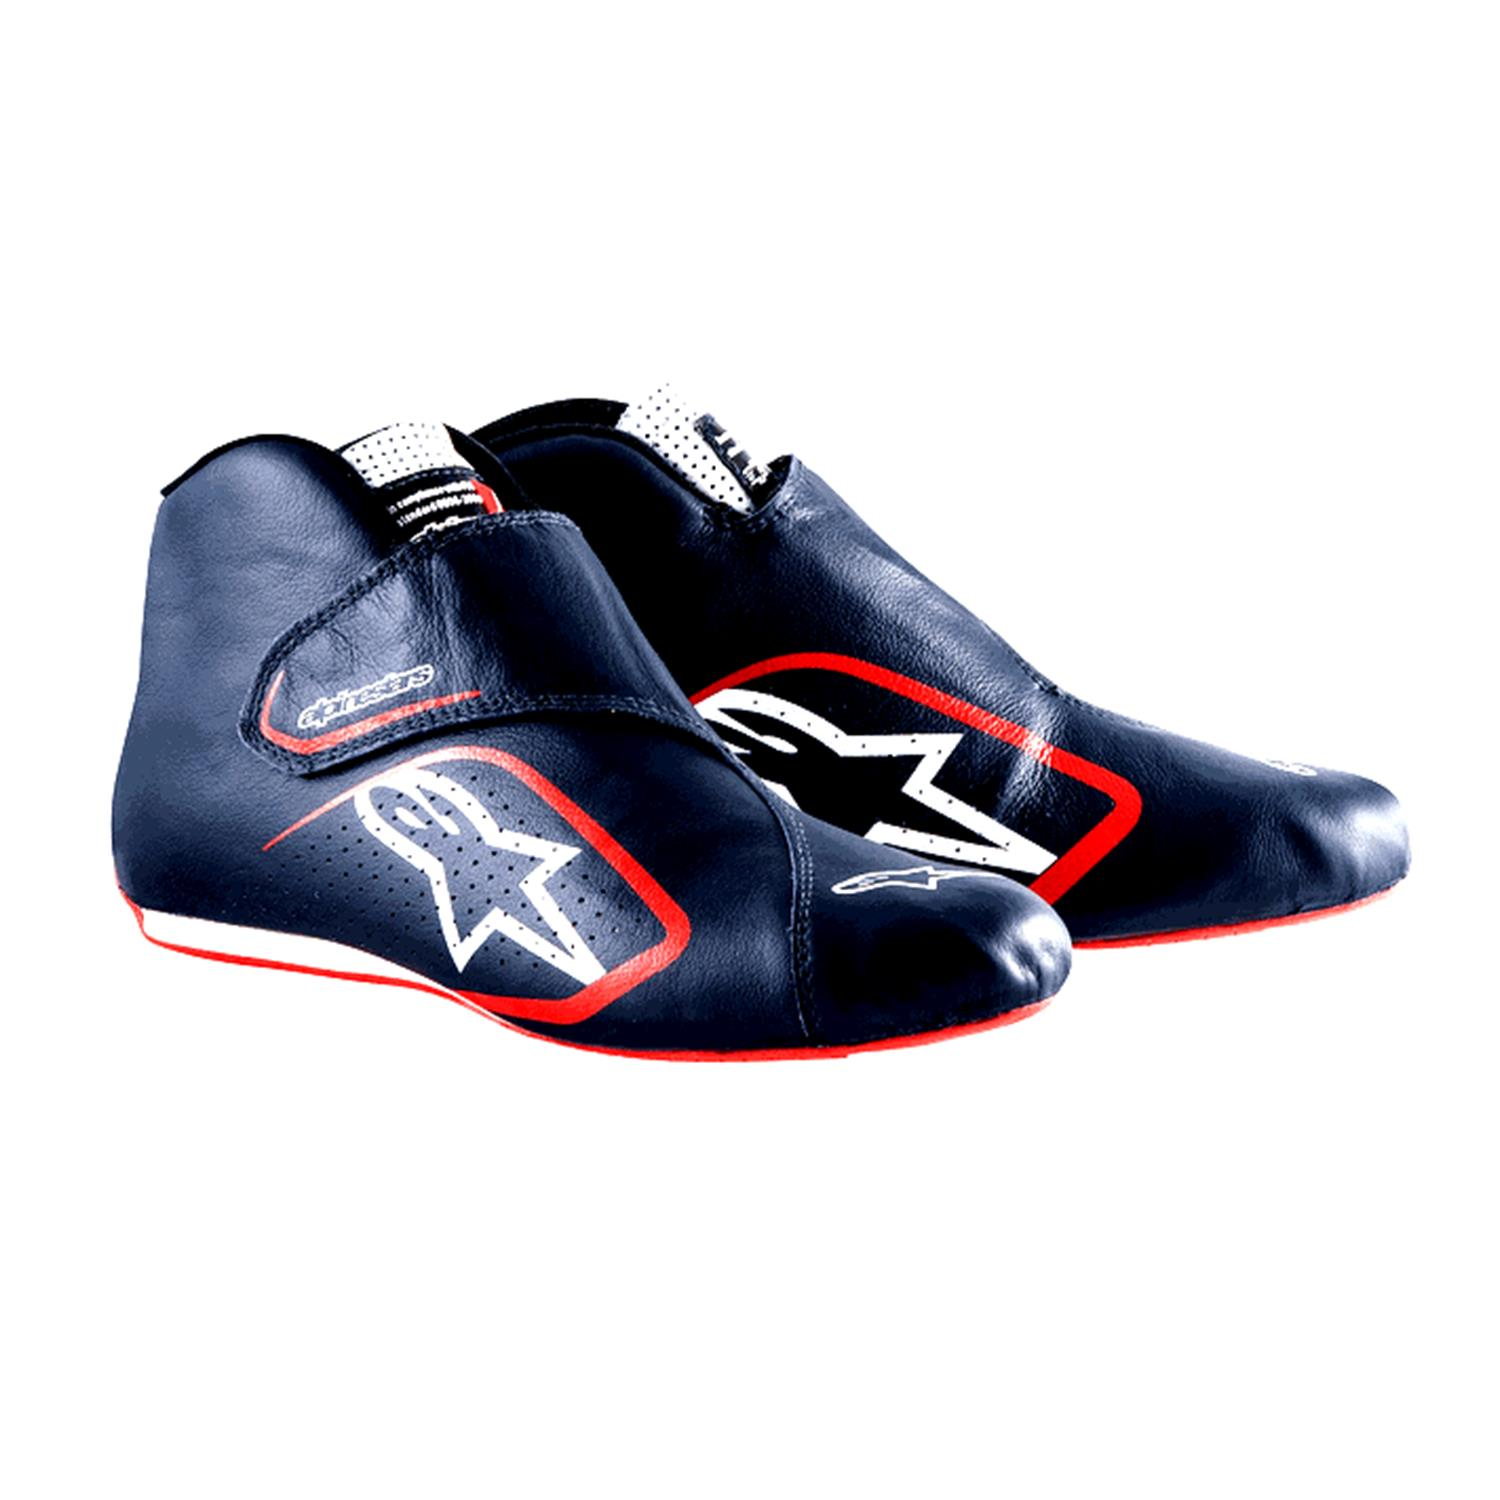 Alpinestars' most minimalist and most expensive shoe..$429 - Why - Kangaroo leather - supportive, light, wear resistant, holds shape and breathable. A one piece design - one seam.Minimalist design - for weight reduction, ease of use and note the logo screen printed - saves a half ounce!